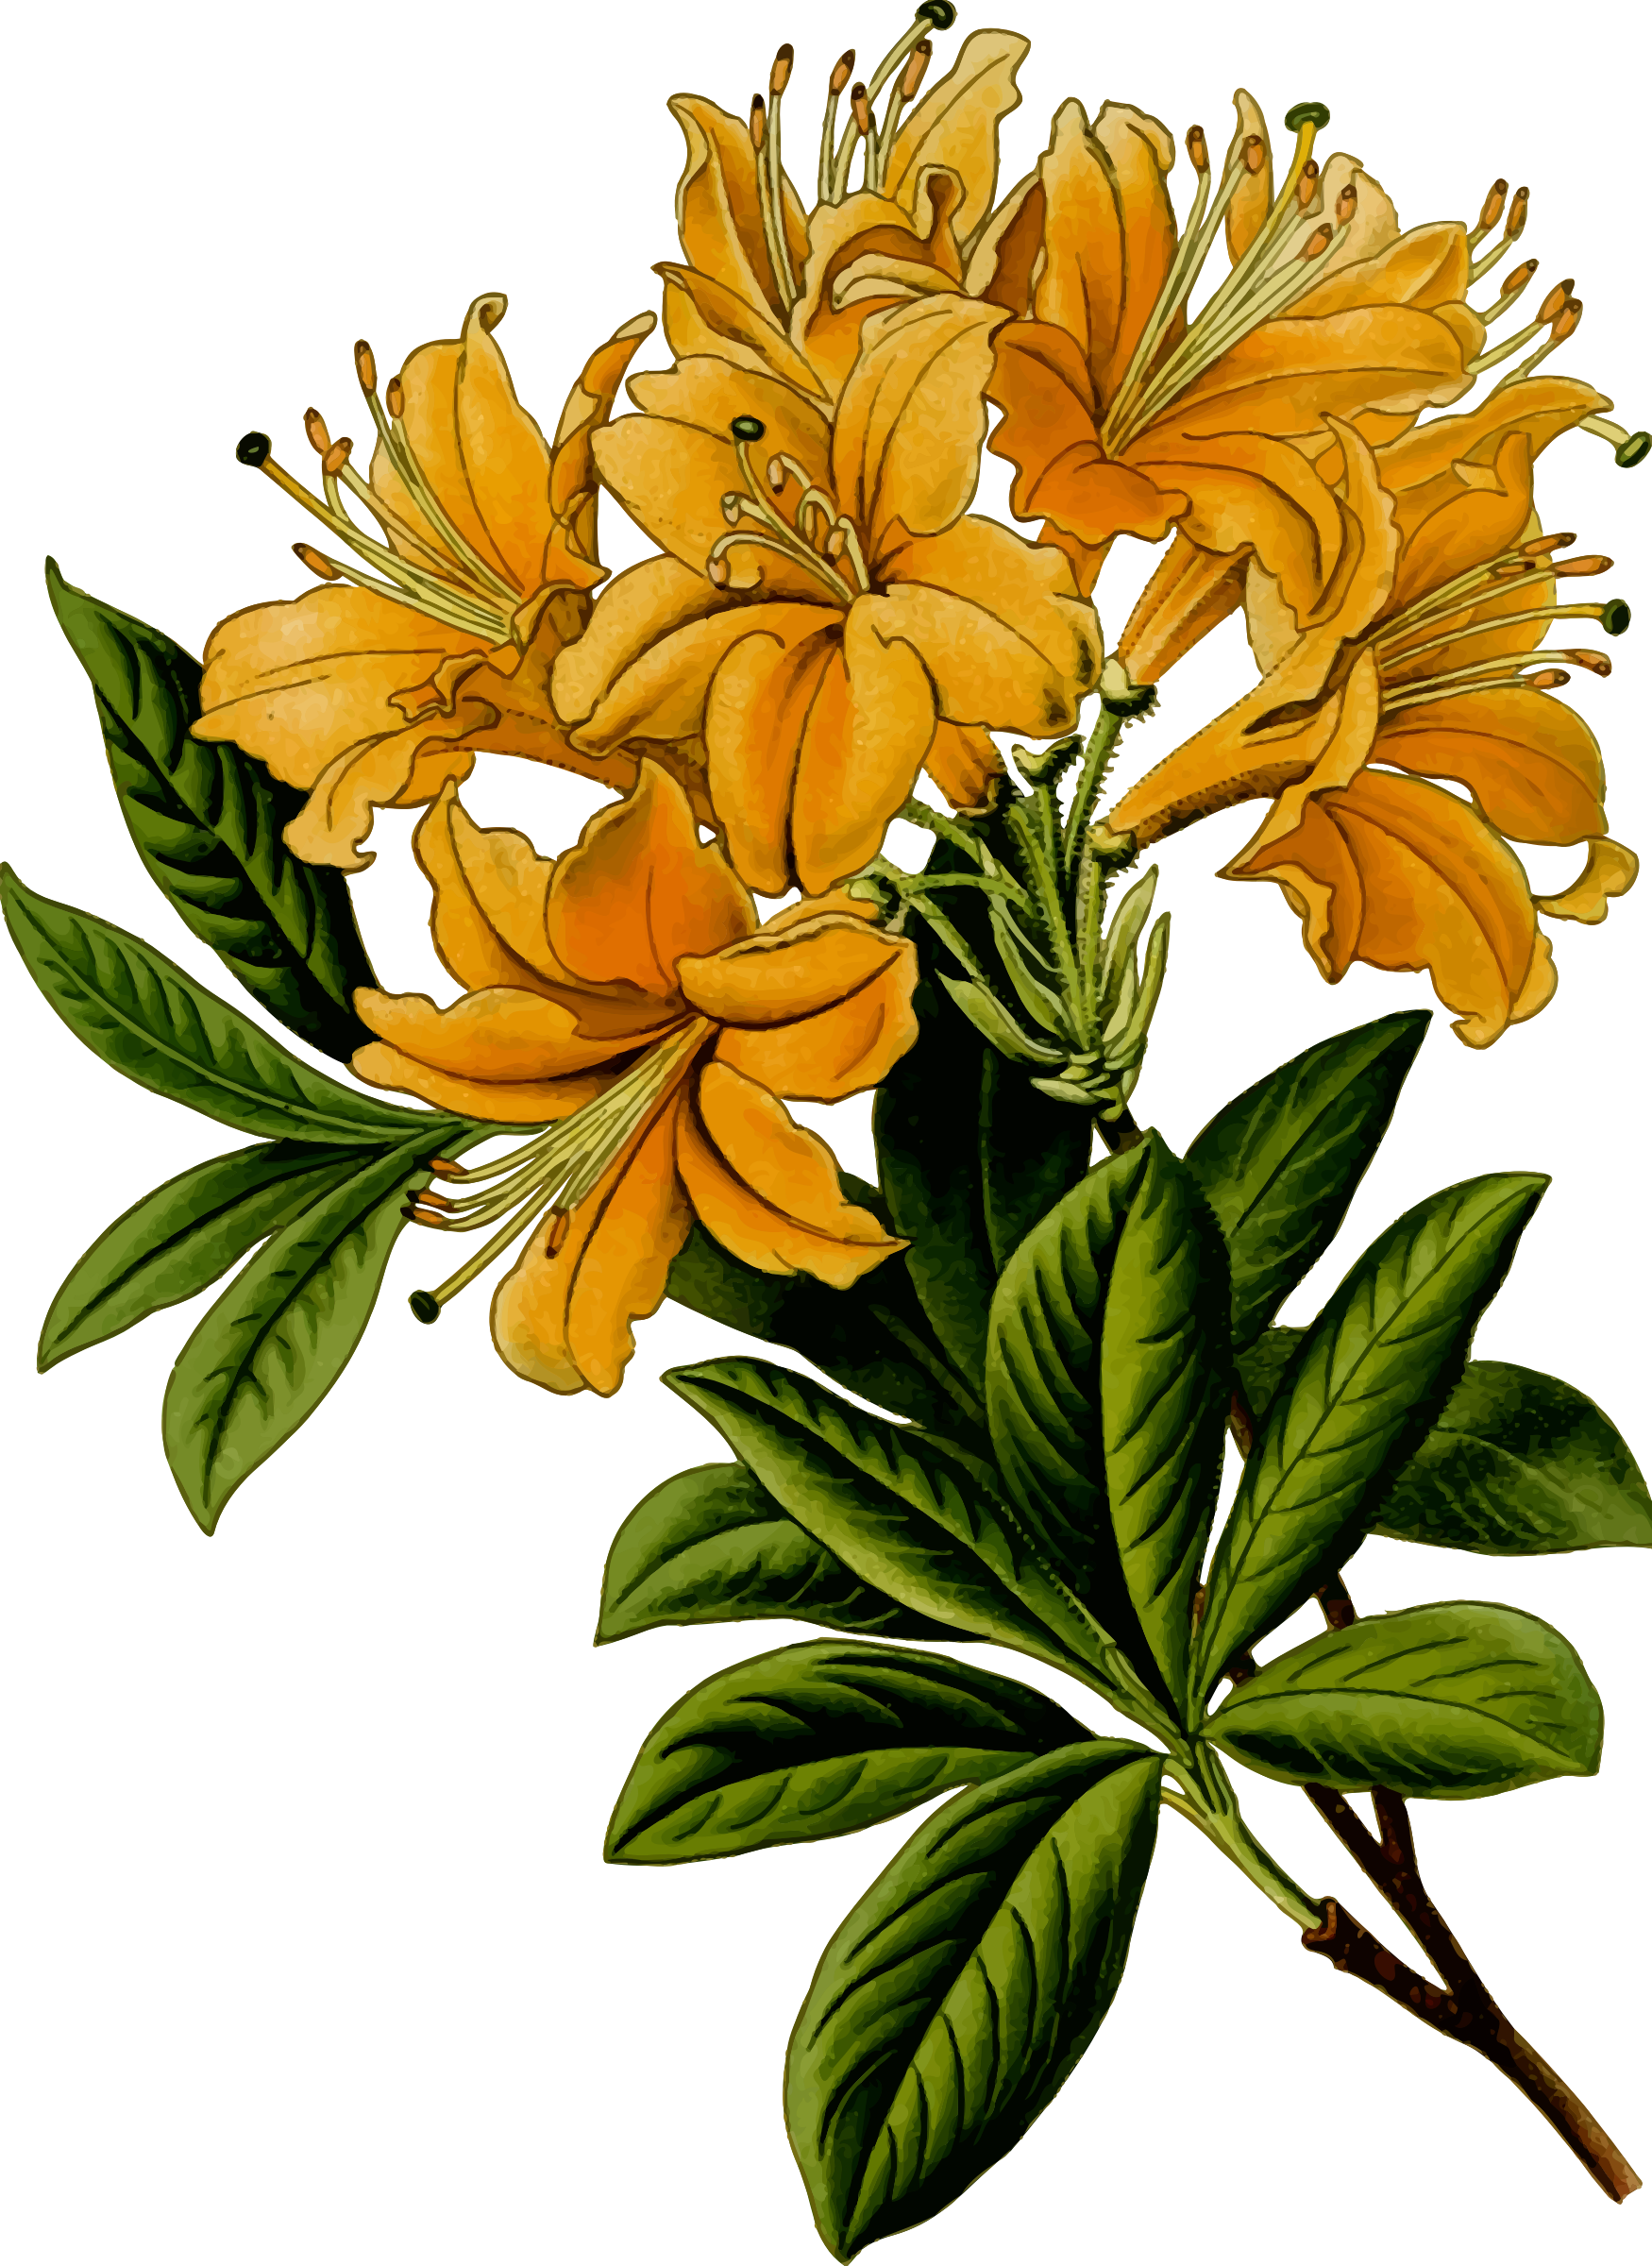 Rhododendron by Firkin